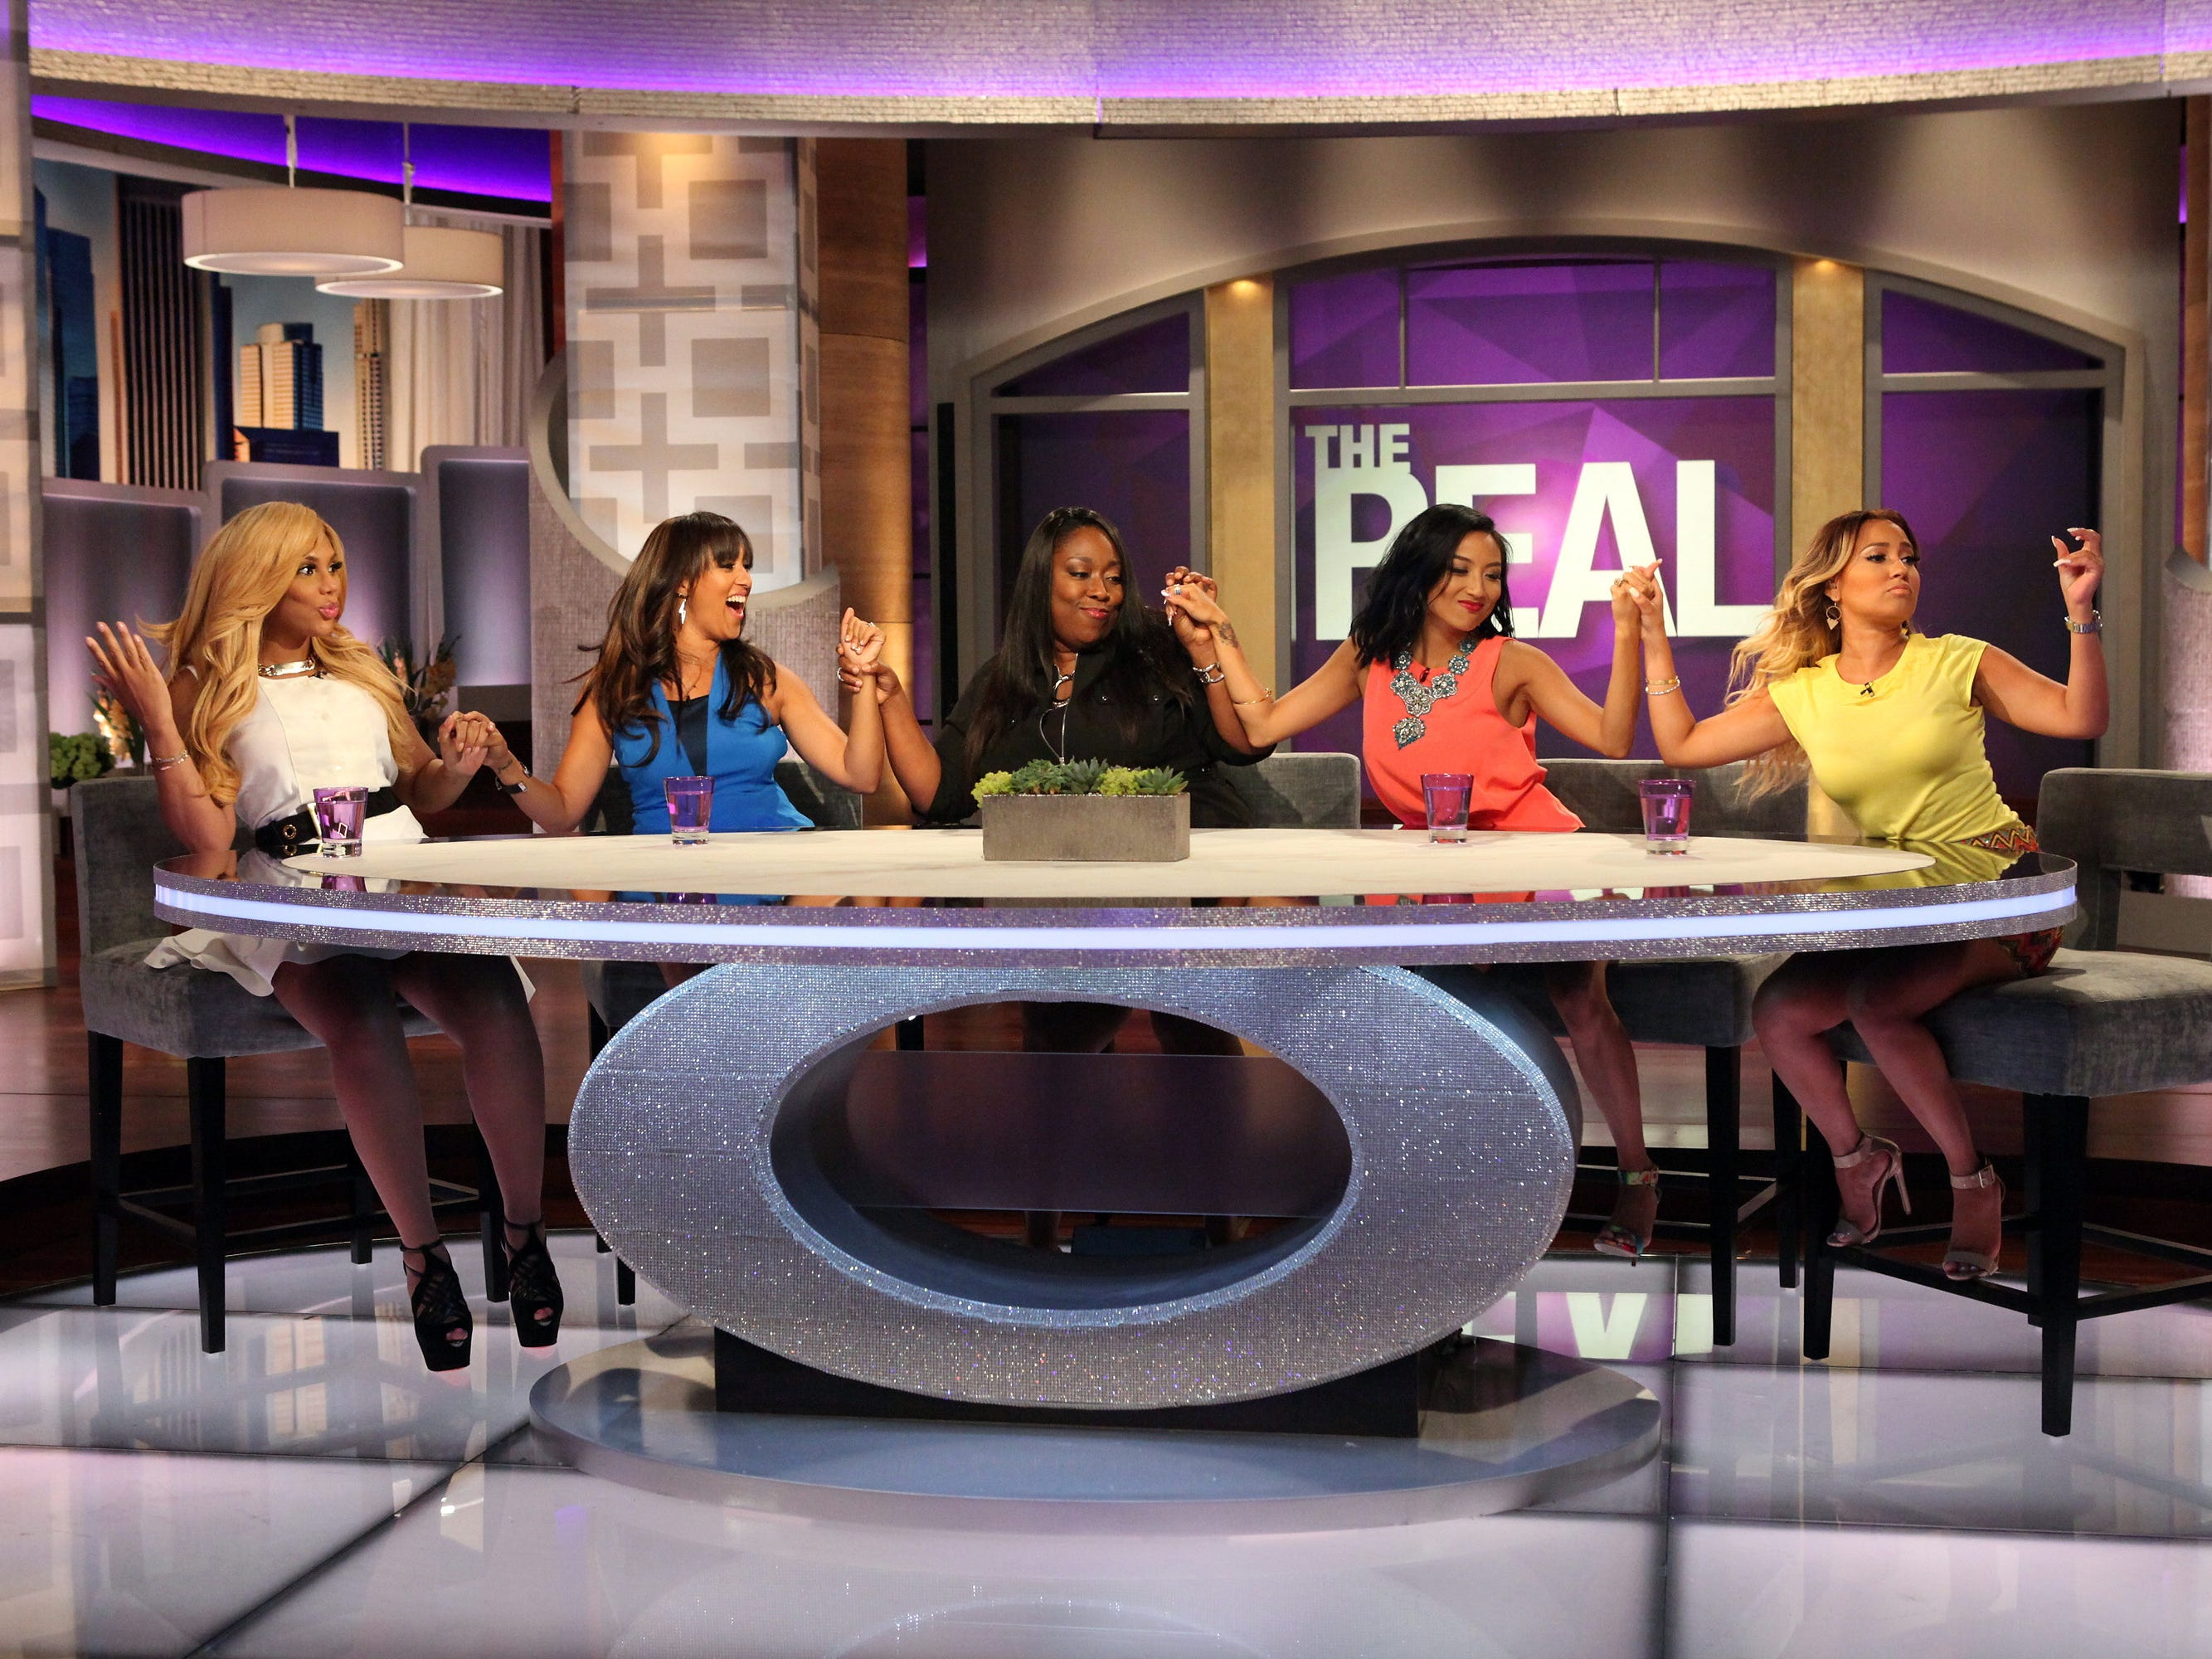 "Hosts of the TV talk show ""The Real"" Tamar Braxton, left, Tamera Mowry-Housley, Loni Love, Jeannie Mai and Adrienne Bailon. CREDIT: Michael Rozman, Warner Bros. [Via MerlinFTP Drop]"